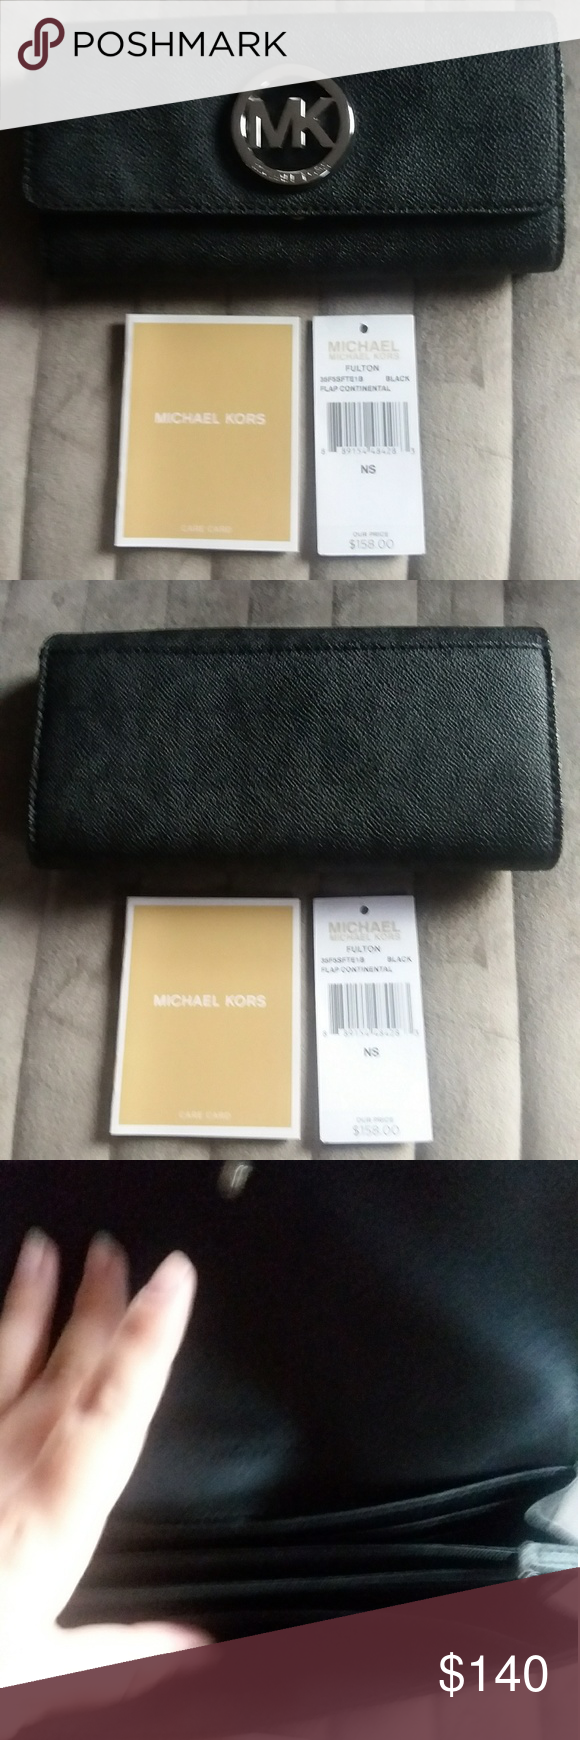 d4e6685f250b8d New with tags authentic Michael Kors wallet New with tages never used  hundred percent authentic large mk wallet leather color is black and silver  also comes ...